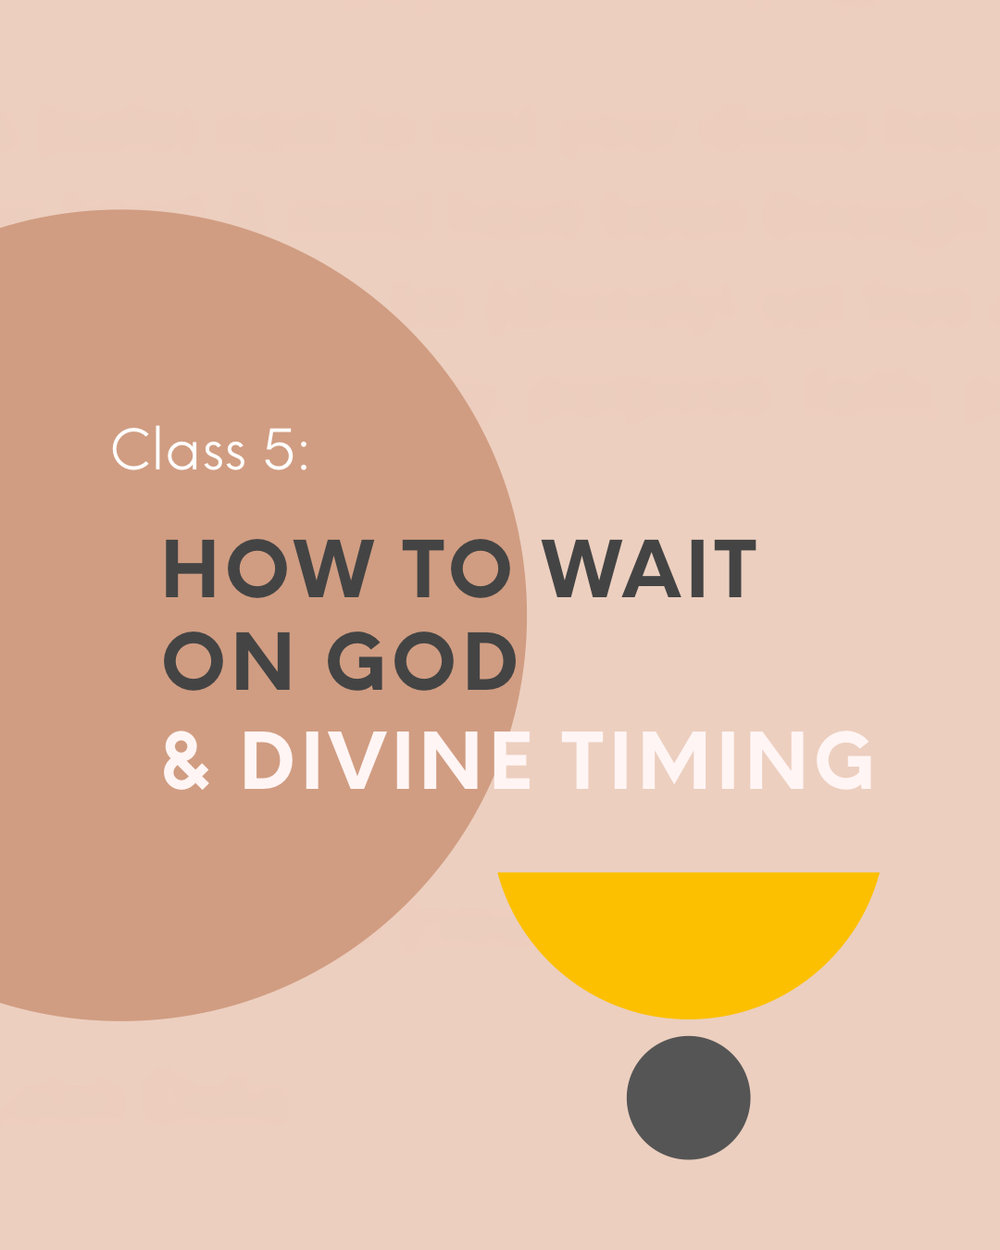 How To Wait on God & Divine Timing - $15We'll learn about divine timing, how to have patience on the journey, how-to discern when to be still, move on, release, and take action, how-to develop and grow where you've been planted, and how-to win and elevate, by optimizing this season you're in.